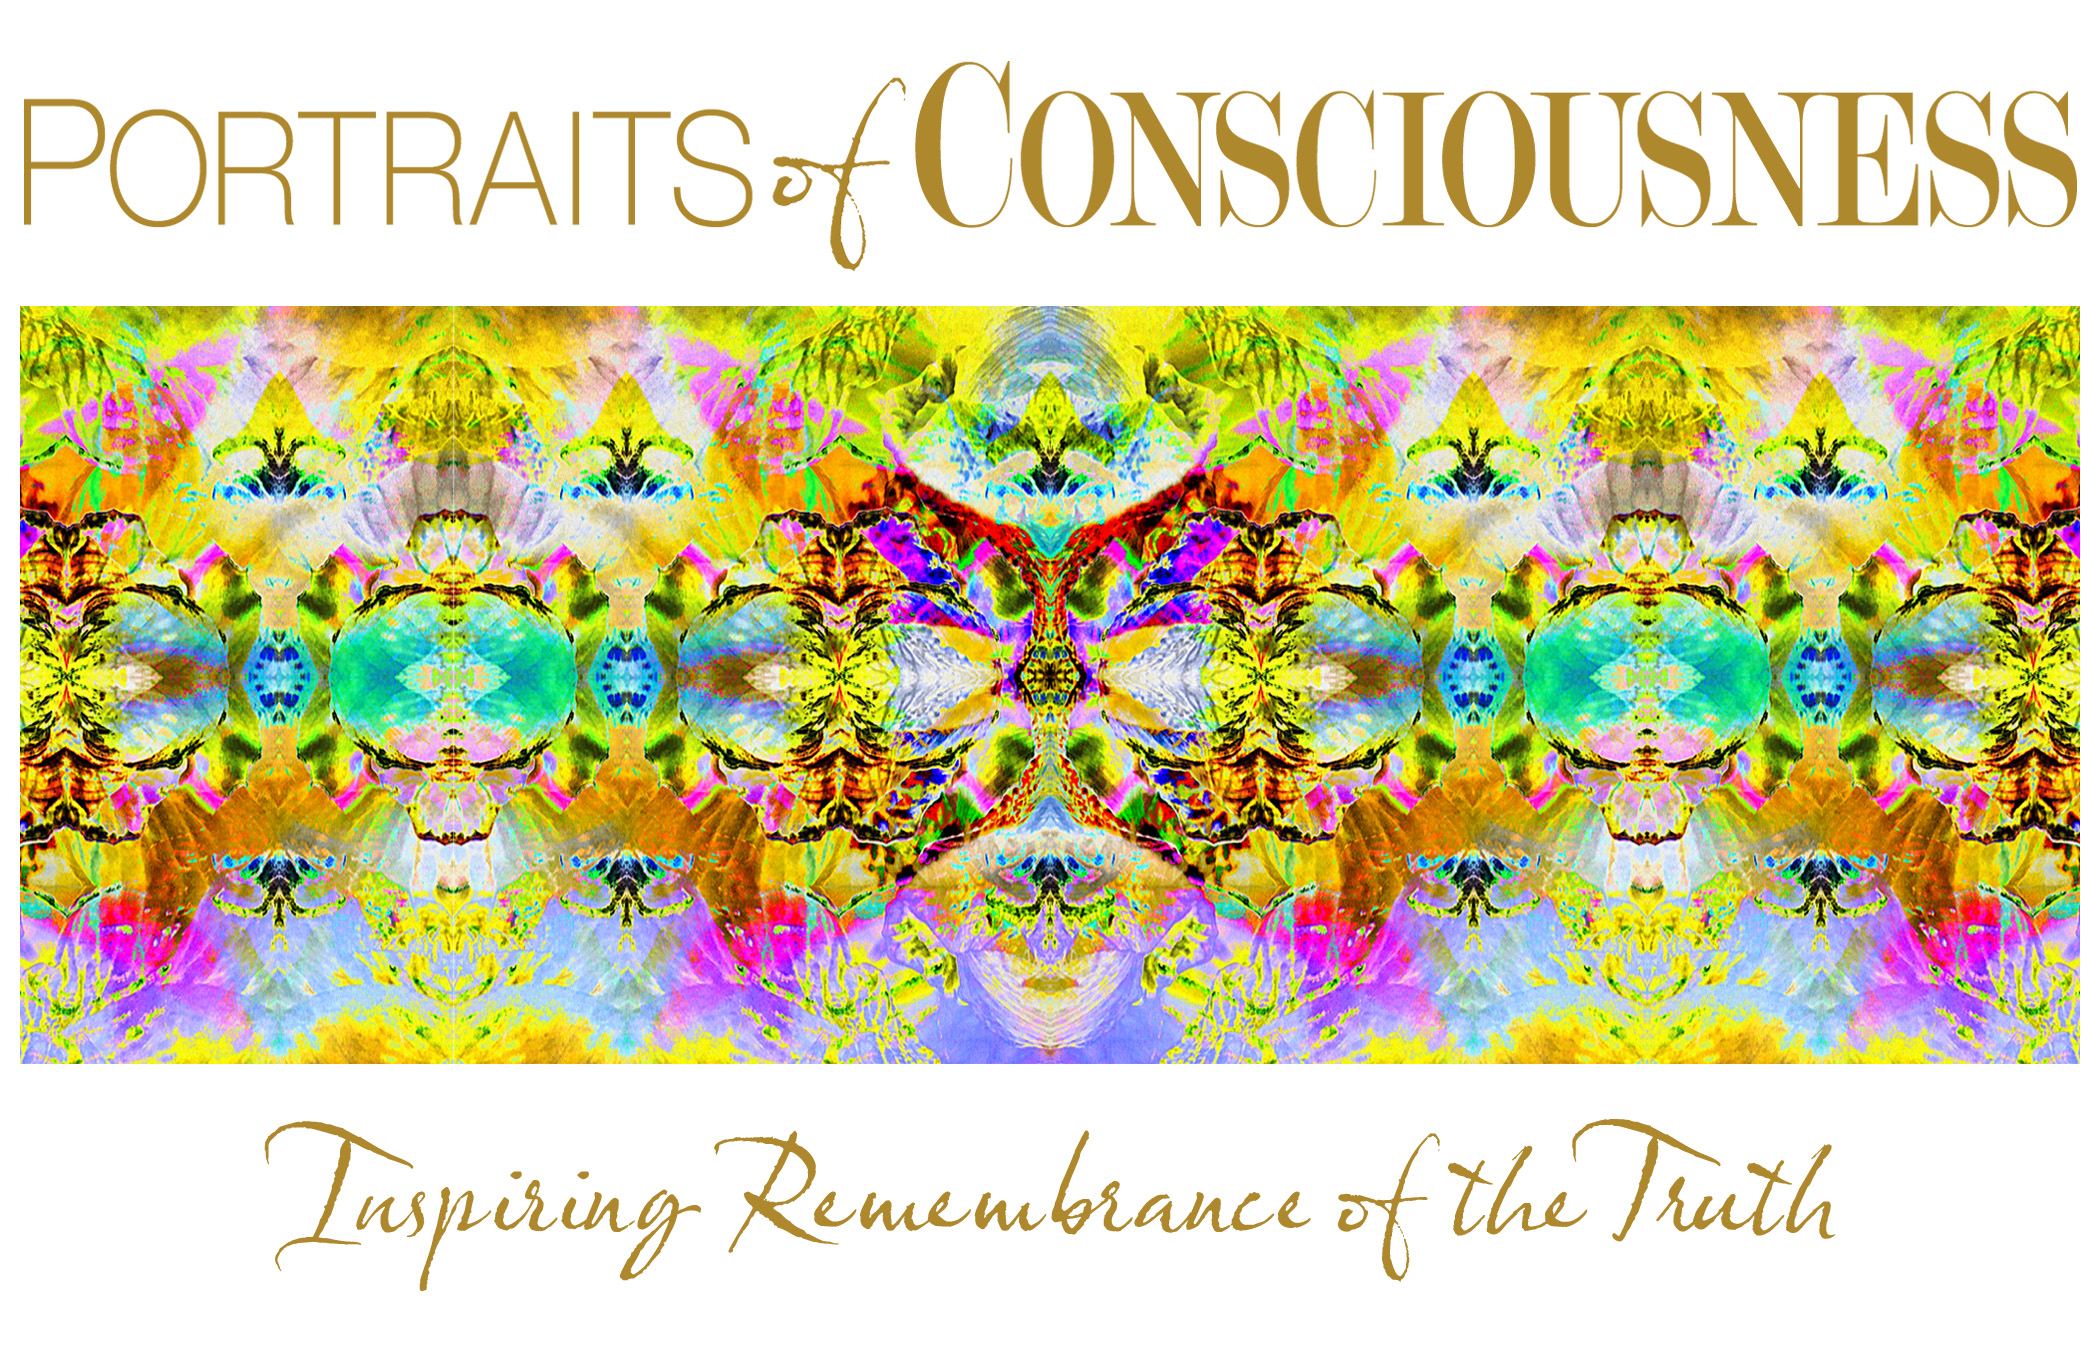 Portraits of Consciousness | Inspiring Remembrance of the Truth, Cover Image, Logo, Tagline